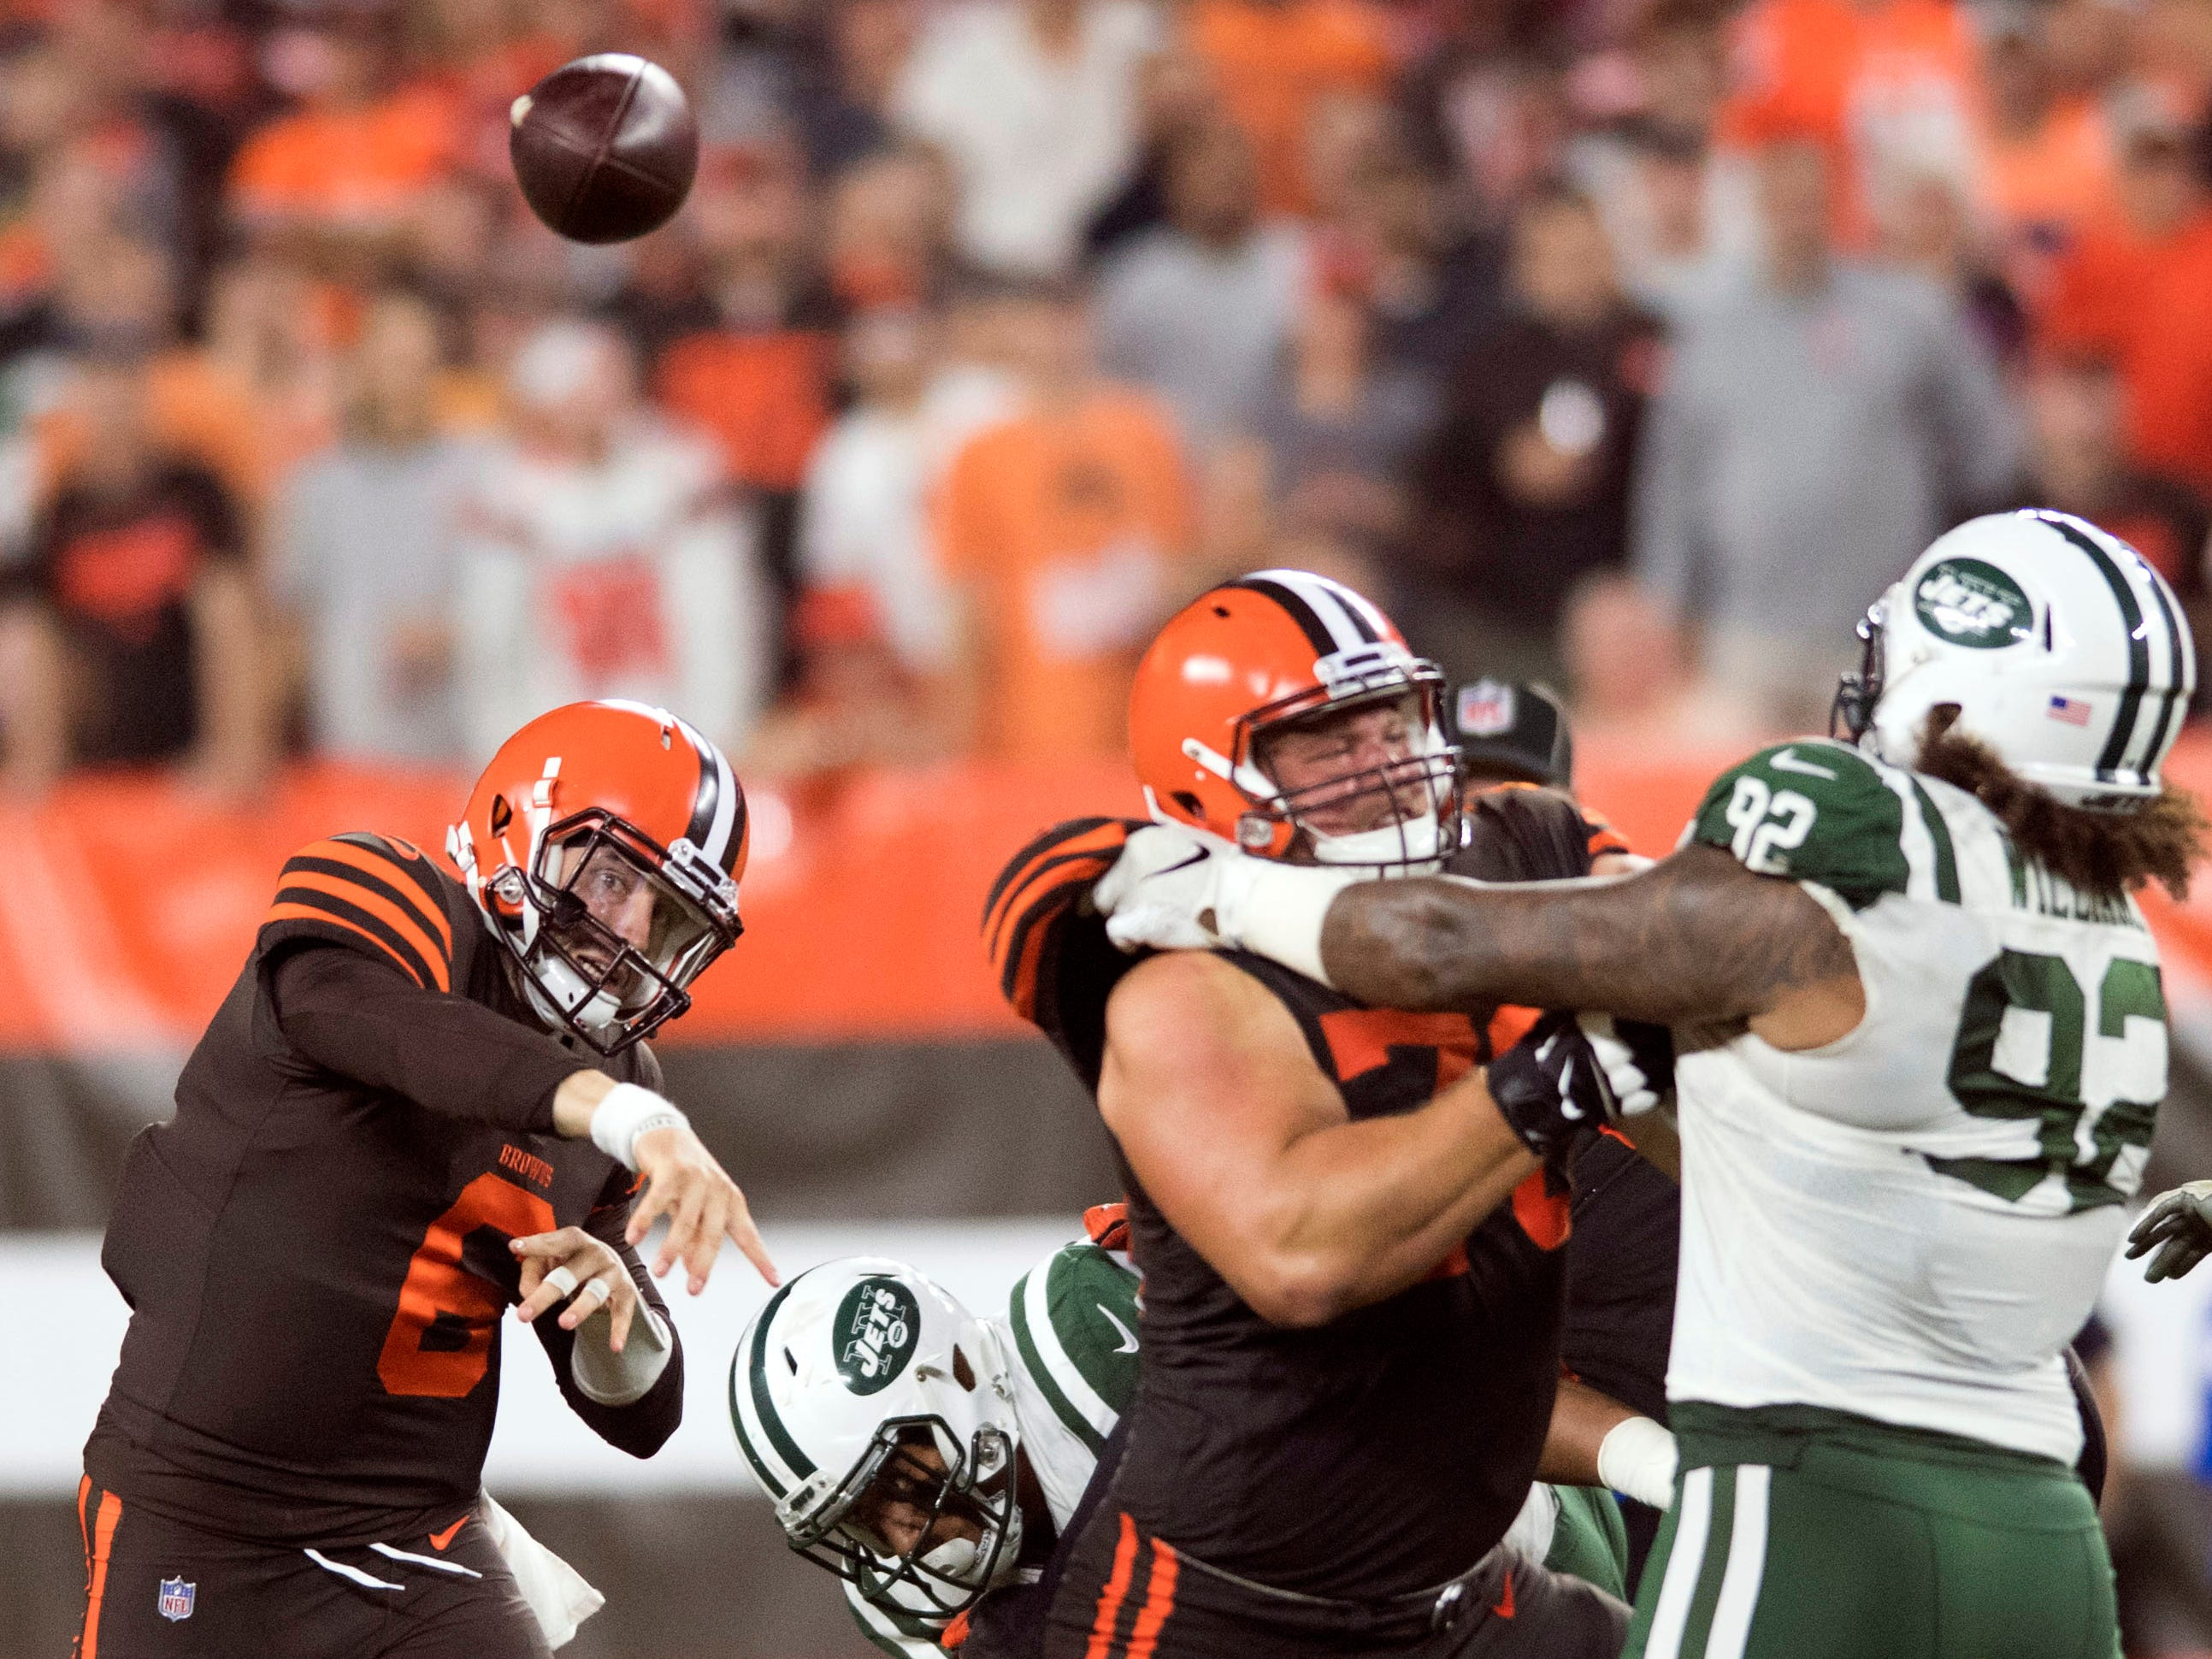 Cleveland Browns quarterback Baker Mayfield throws a pass during the first half against the New York Jets at FirstEnergy Stadium.